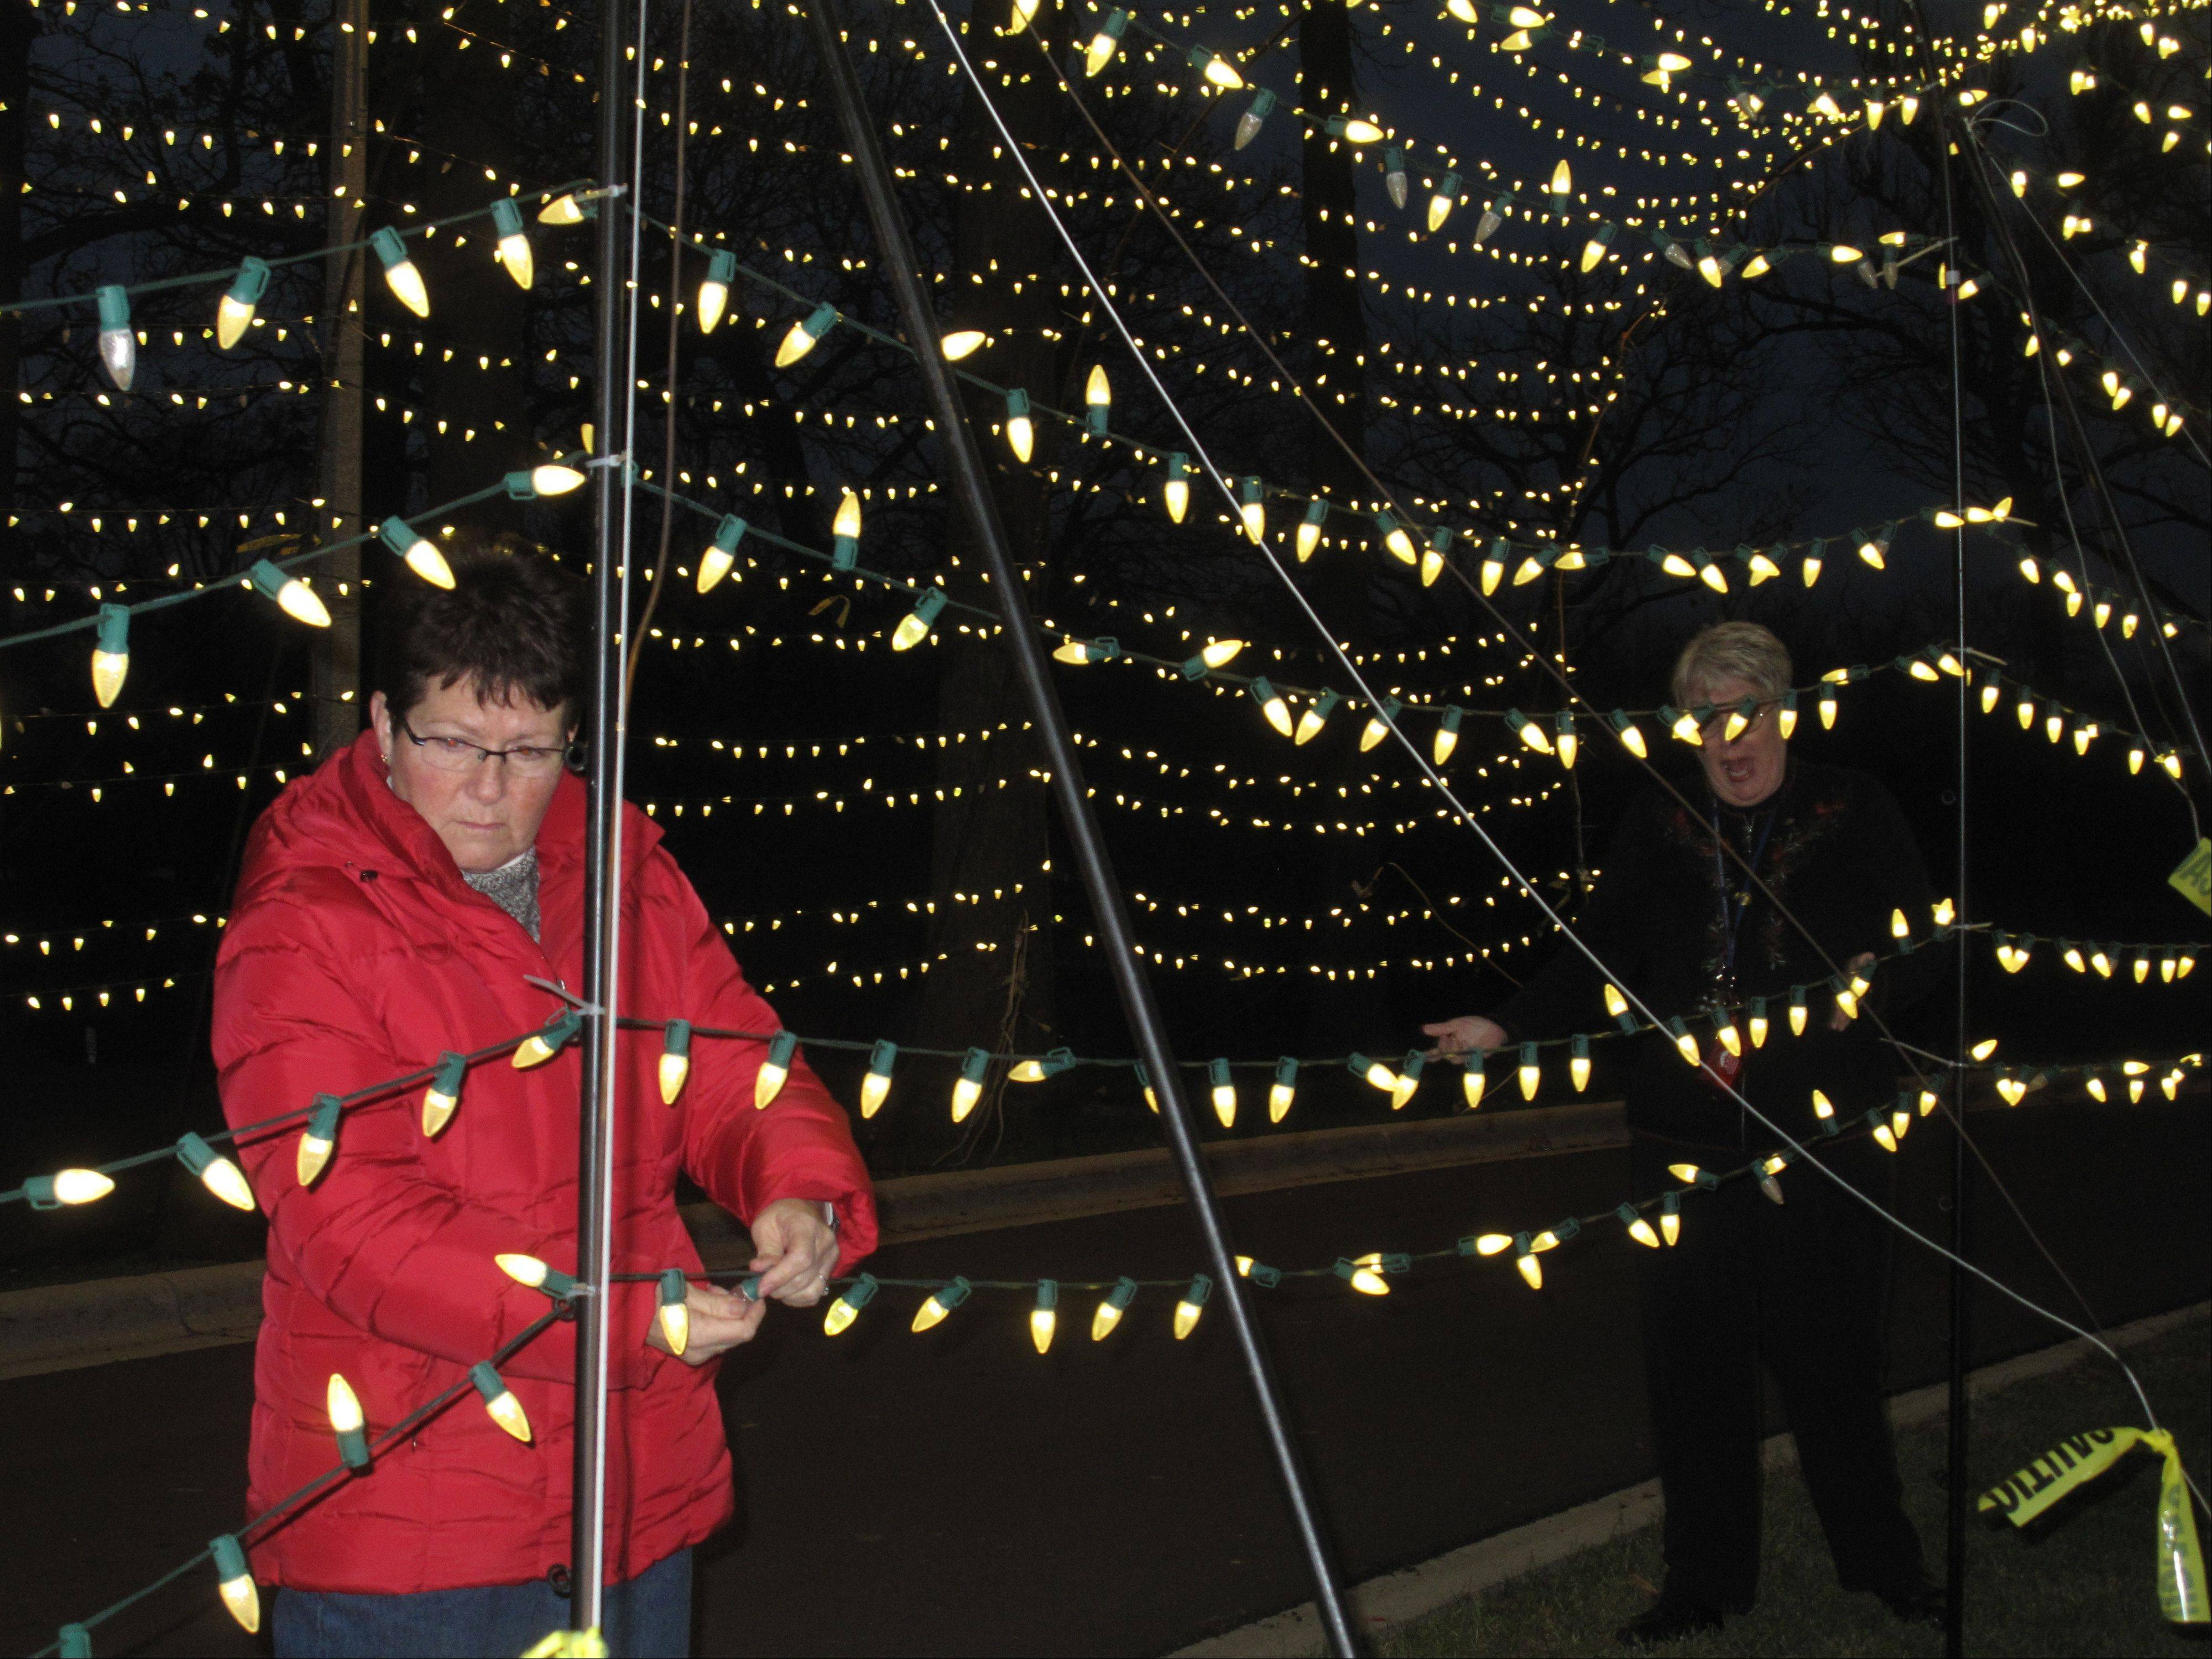 Pam Bellm, a member of the Rotary Club of Aurora and a co-chairwoman of the Festival of Lights, fixes a light on the tunnel display, which she says is always a favorite among children.